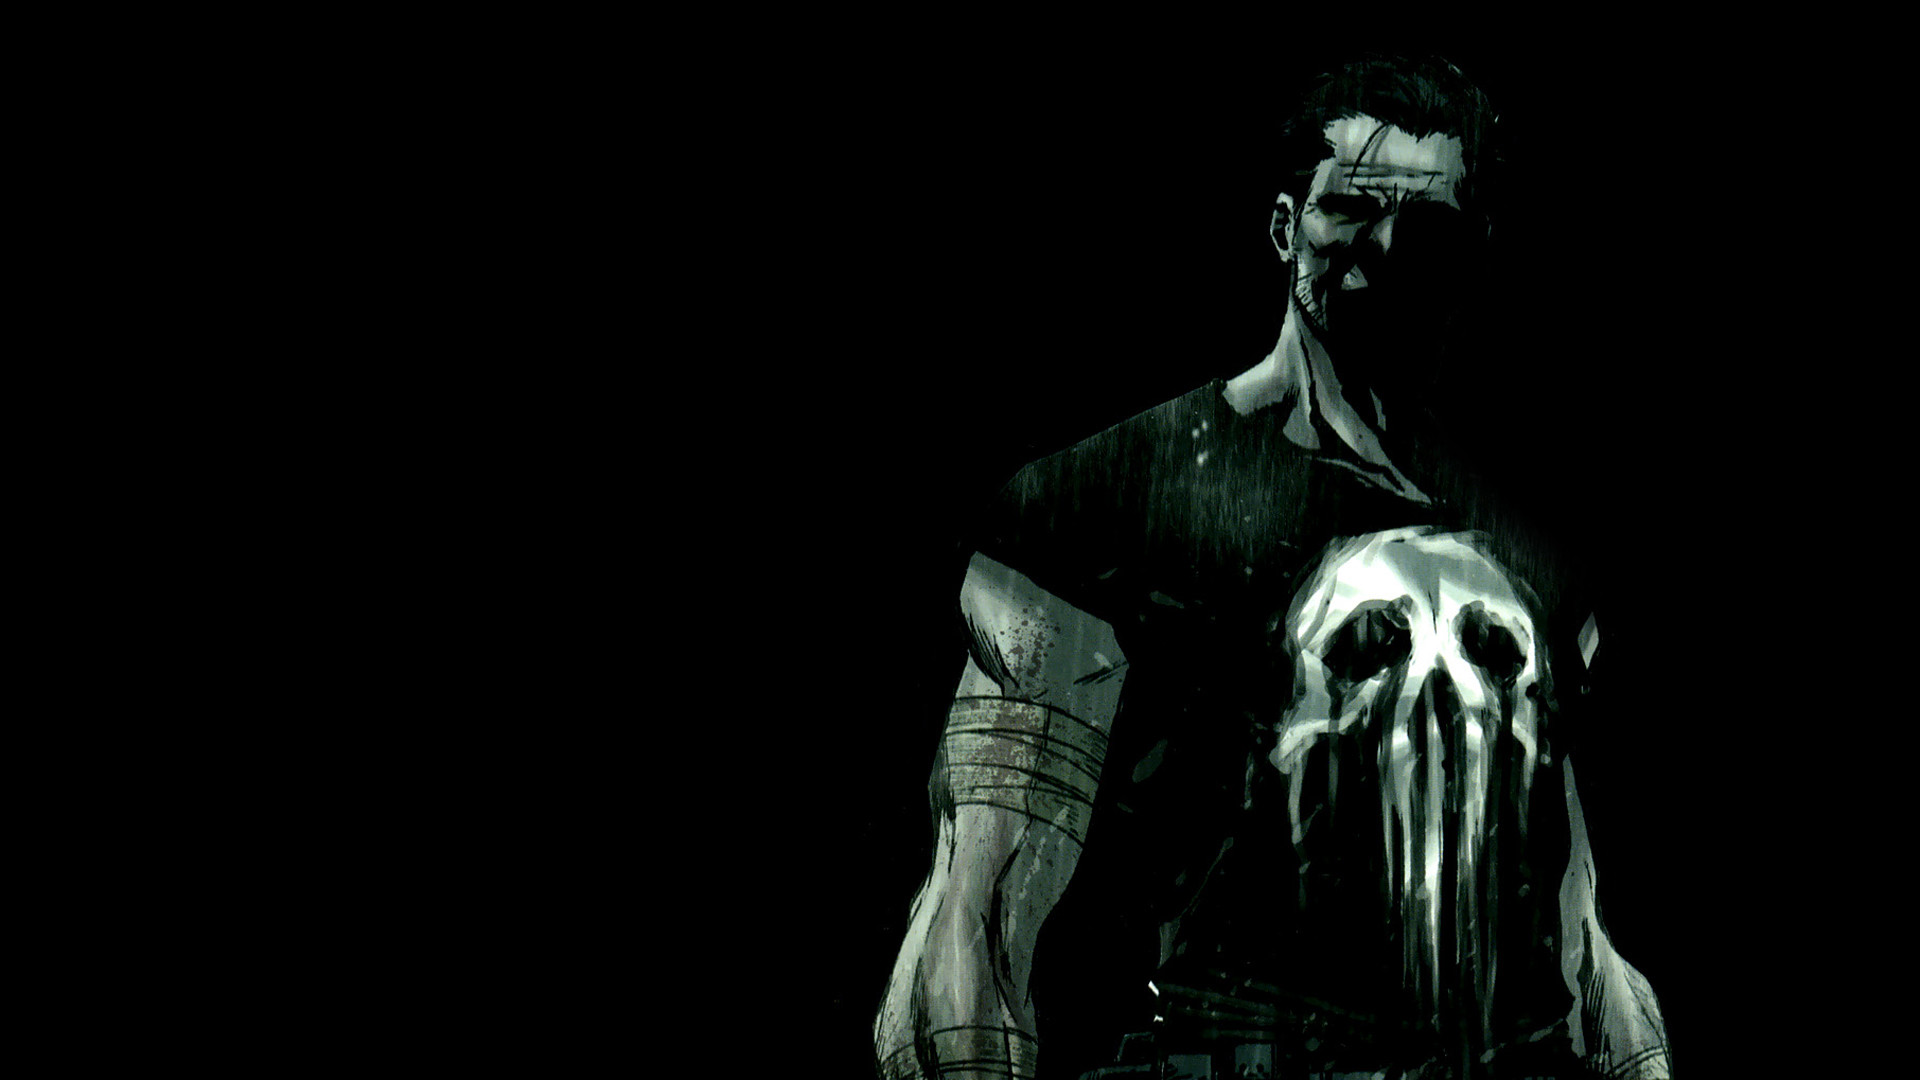 1920x1080 Comics - Punisher Frank Castle Wallpaper